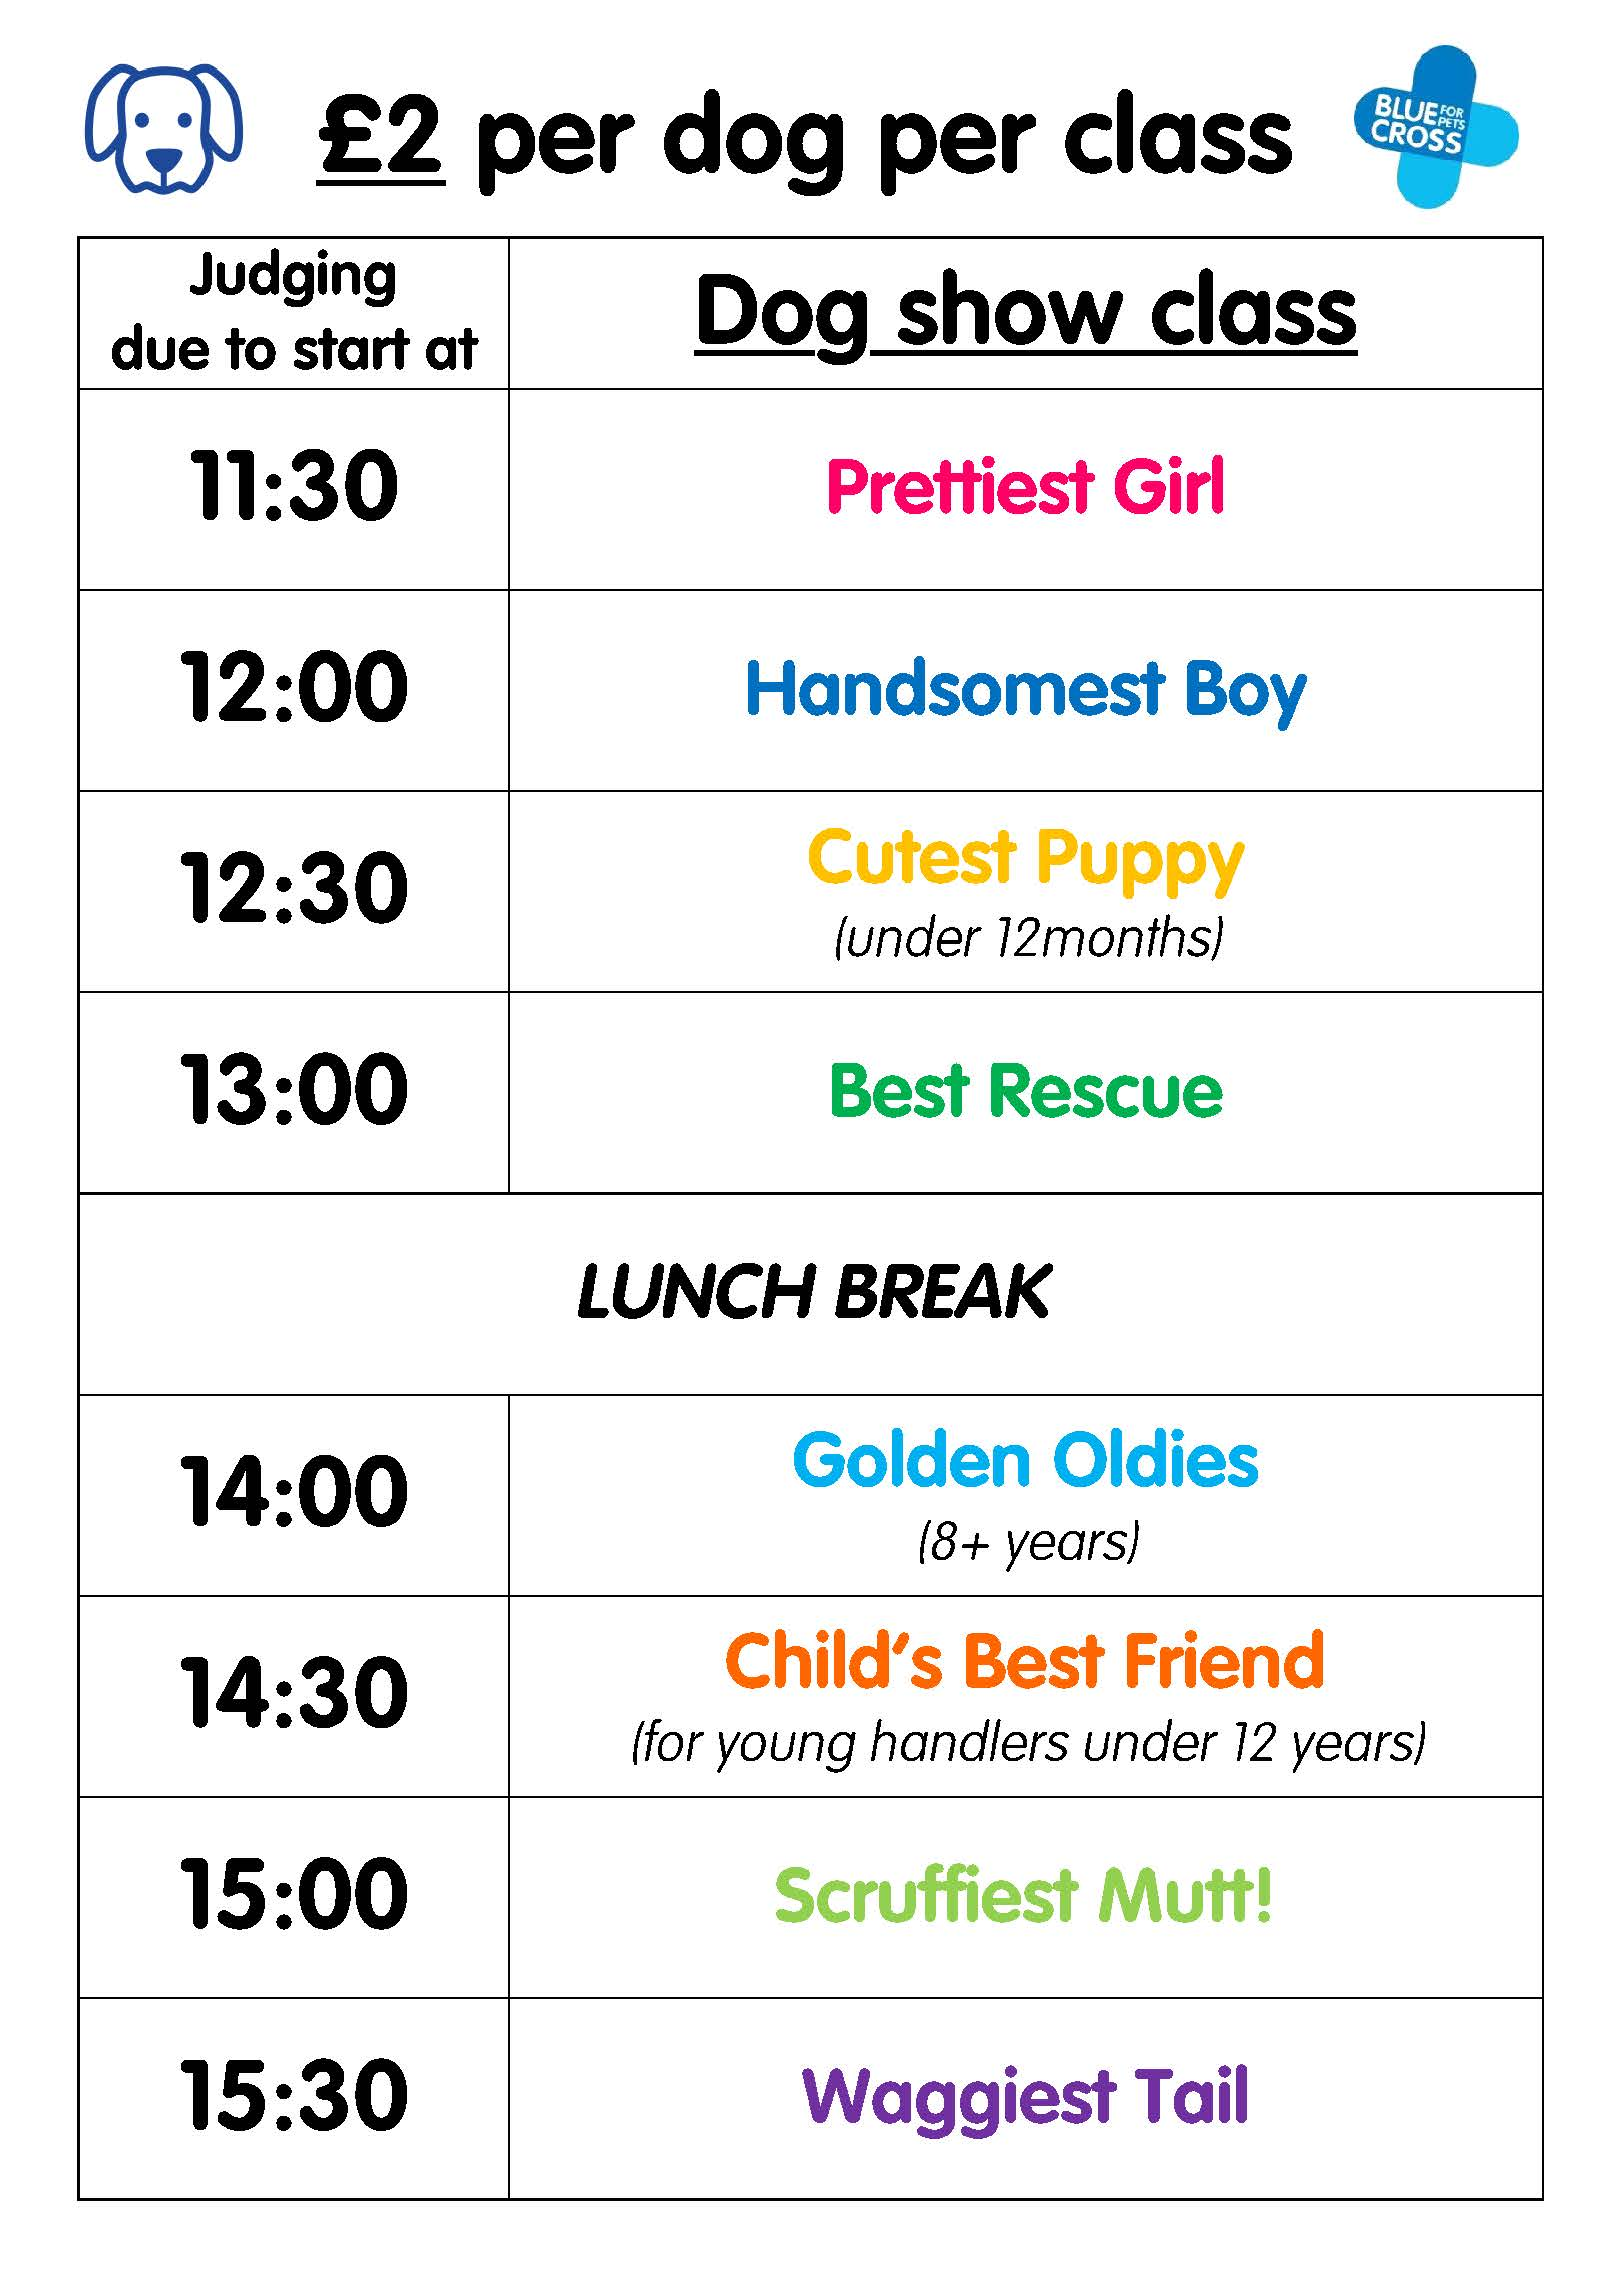 dog show classes schedule.jpg